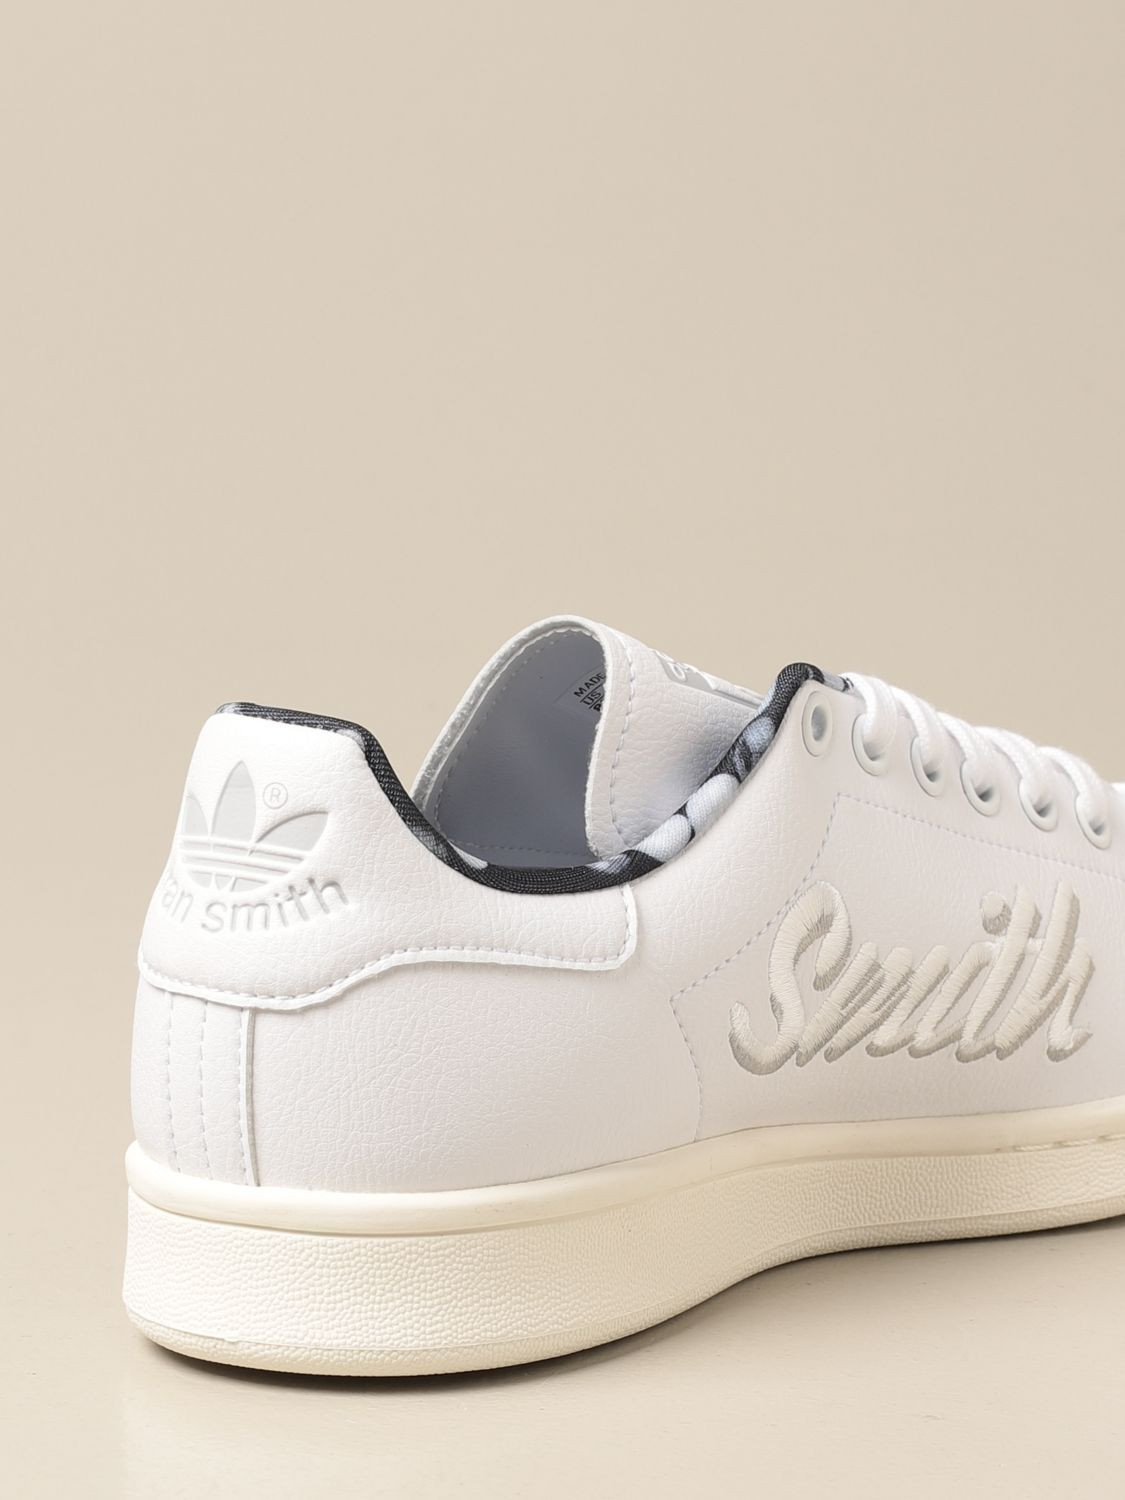 Trainers Adidas Originals: Stan Smith Adidas Originals sneakers in synthetic leather white 3